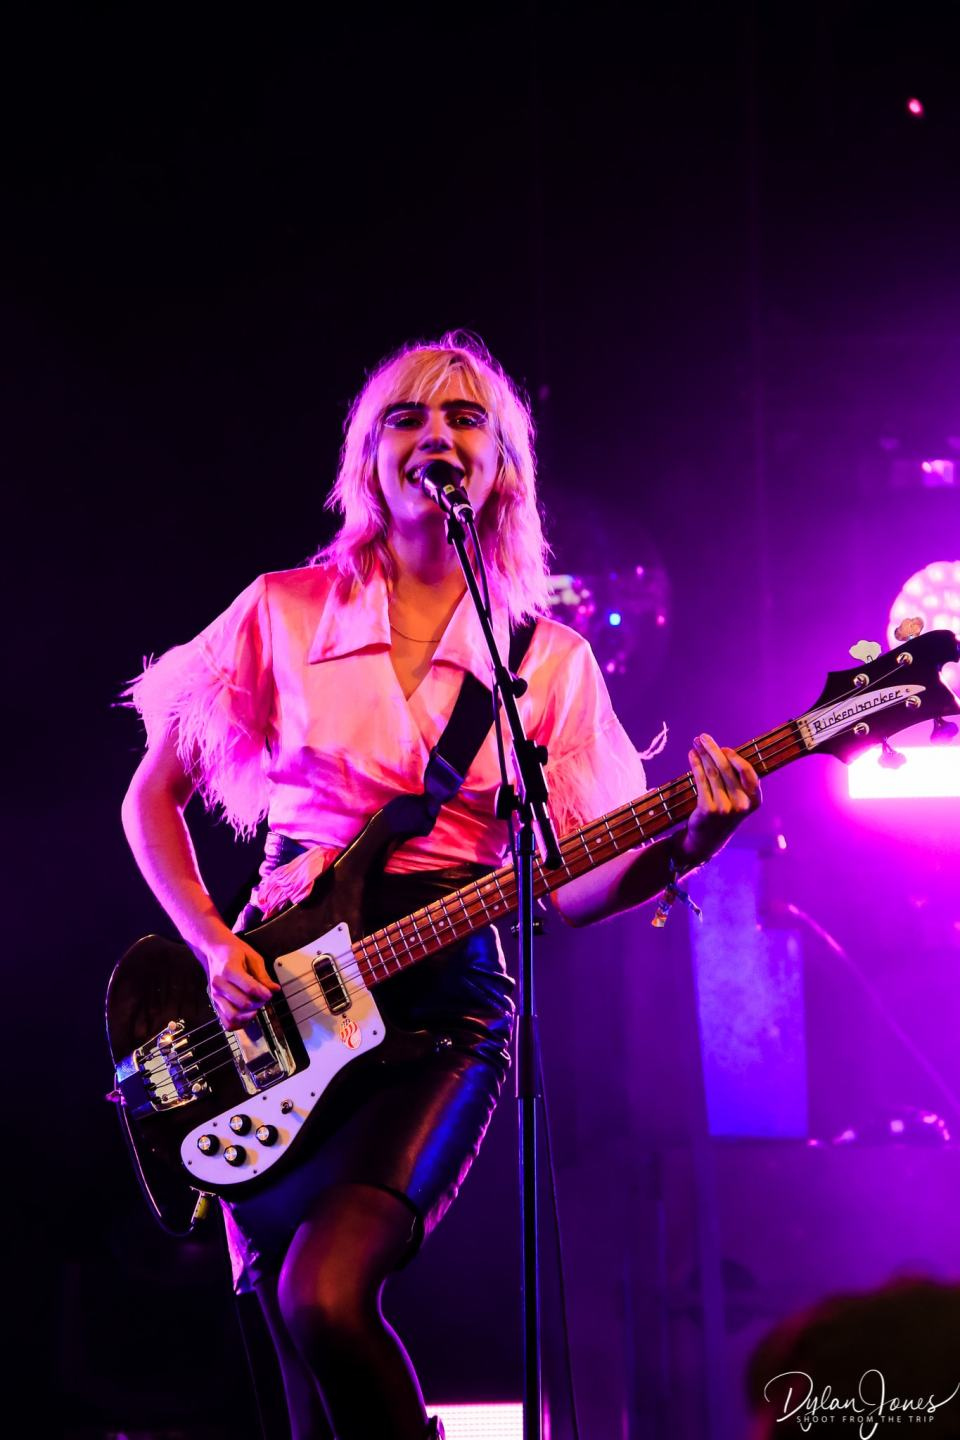 Sunflower Bean playing the Main Stage at Deer Shed Festival 10